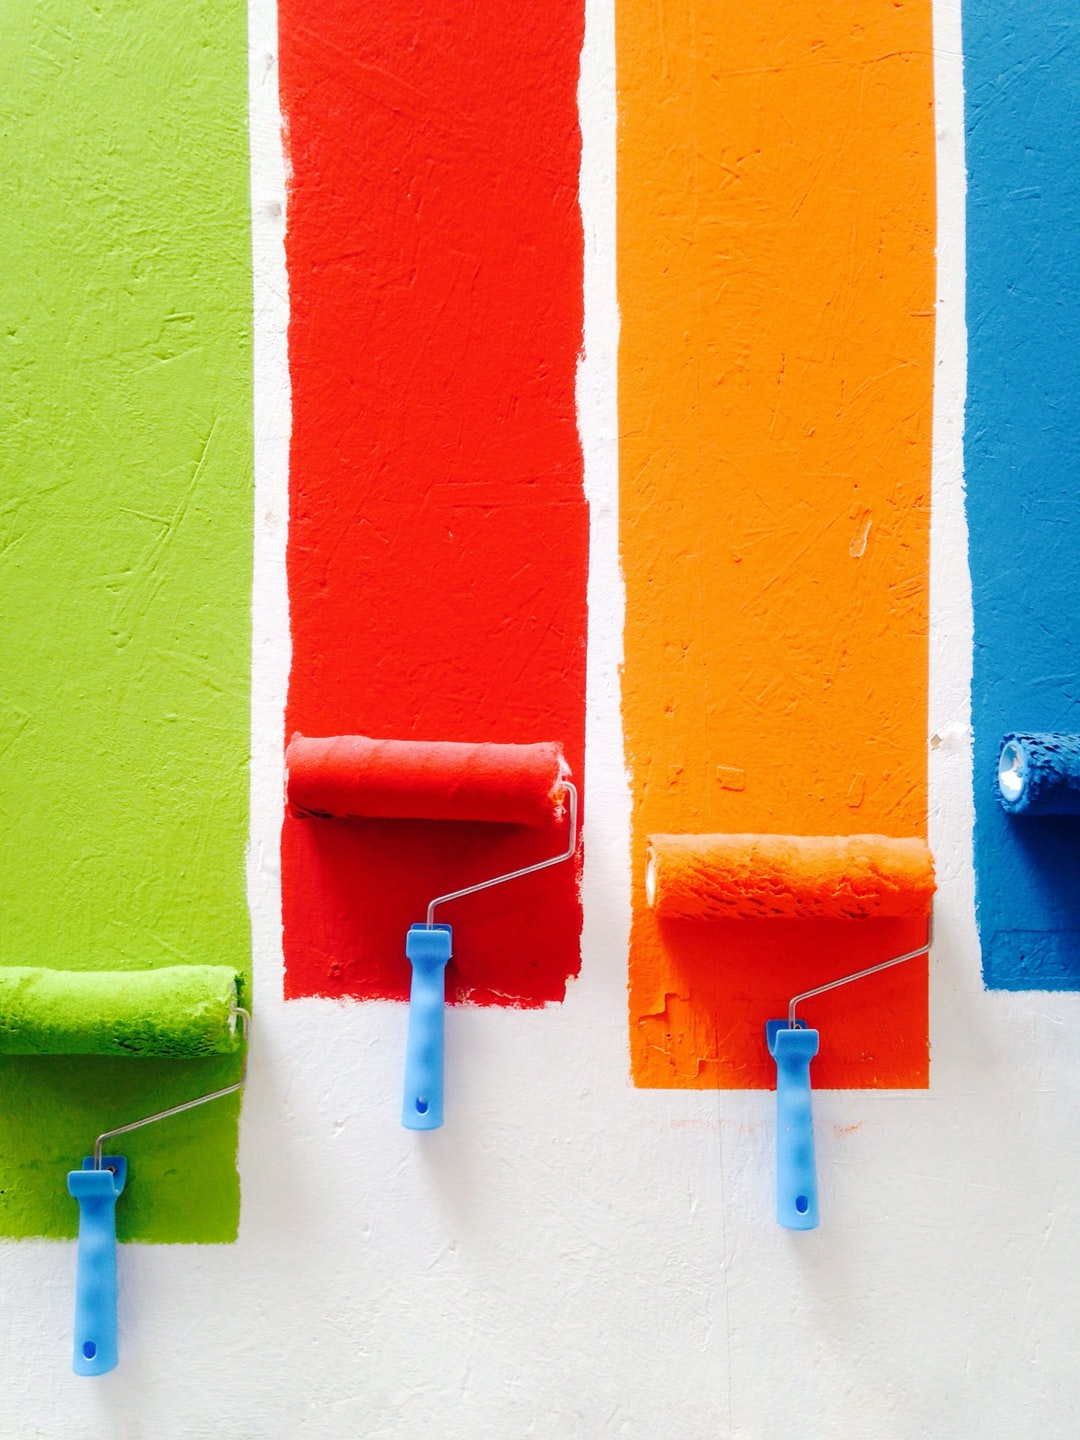 The Top 10 Paint Color Trends for Home Interiors in 2021